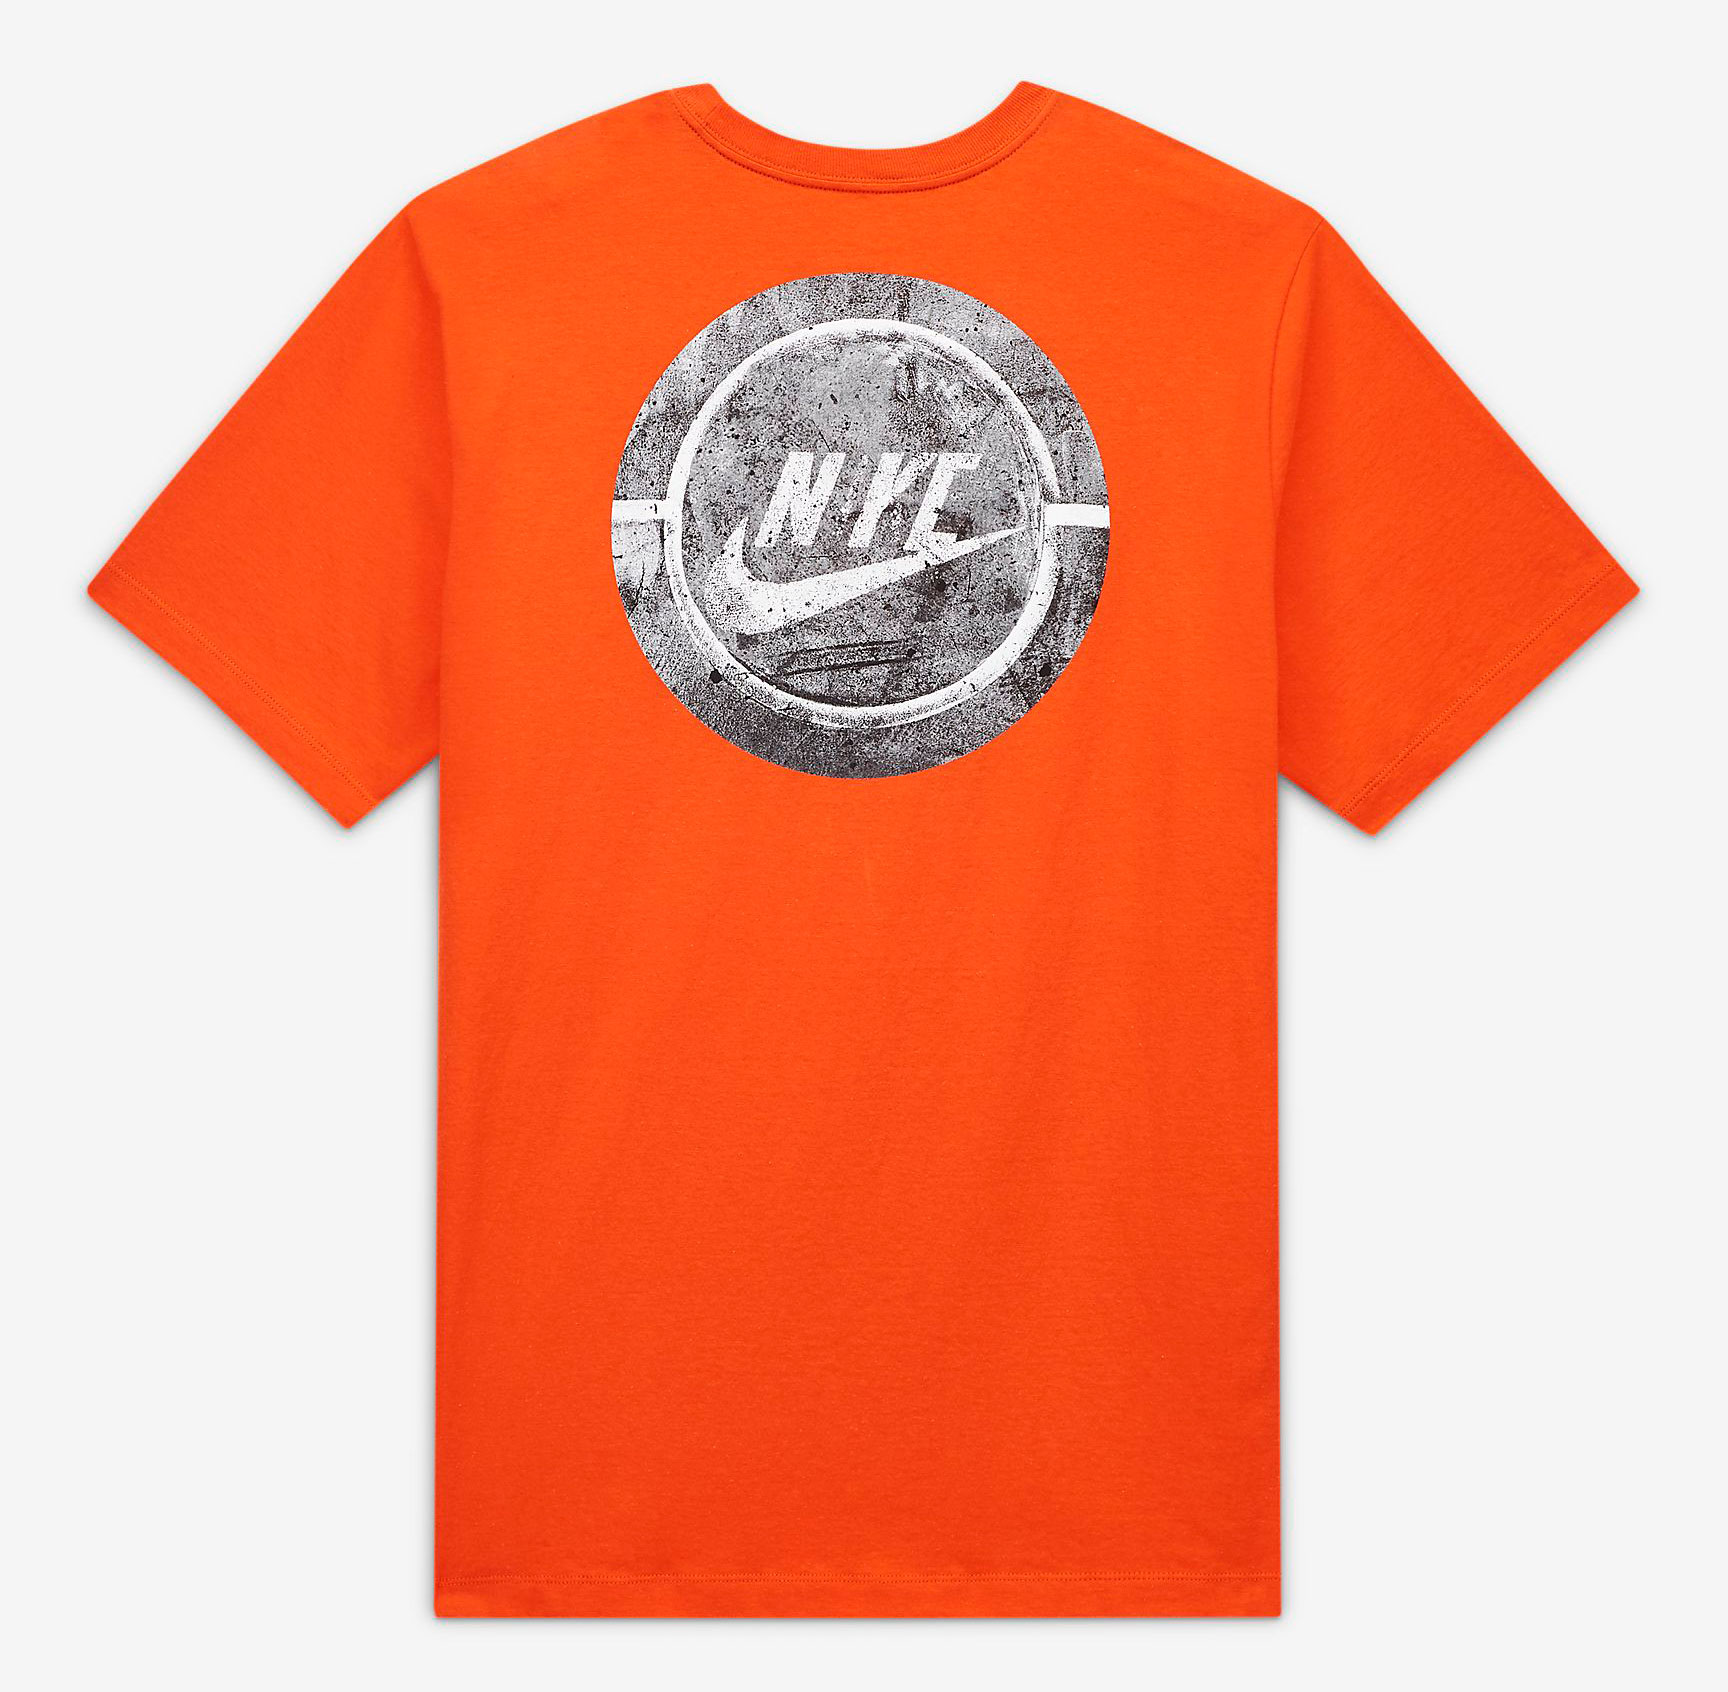 nike-air-force-1-ny-vs-ny-shirt-match-orange-2